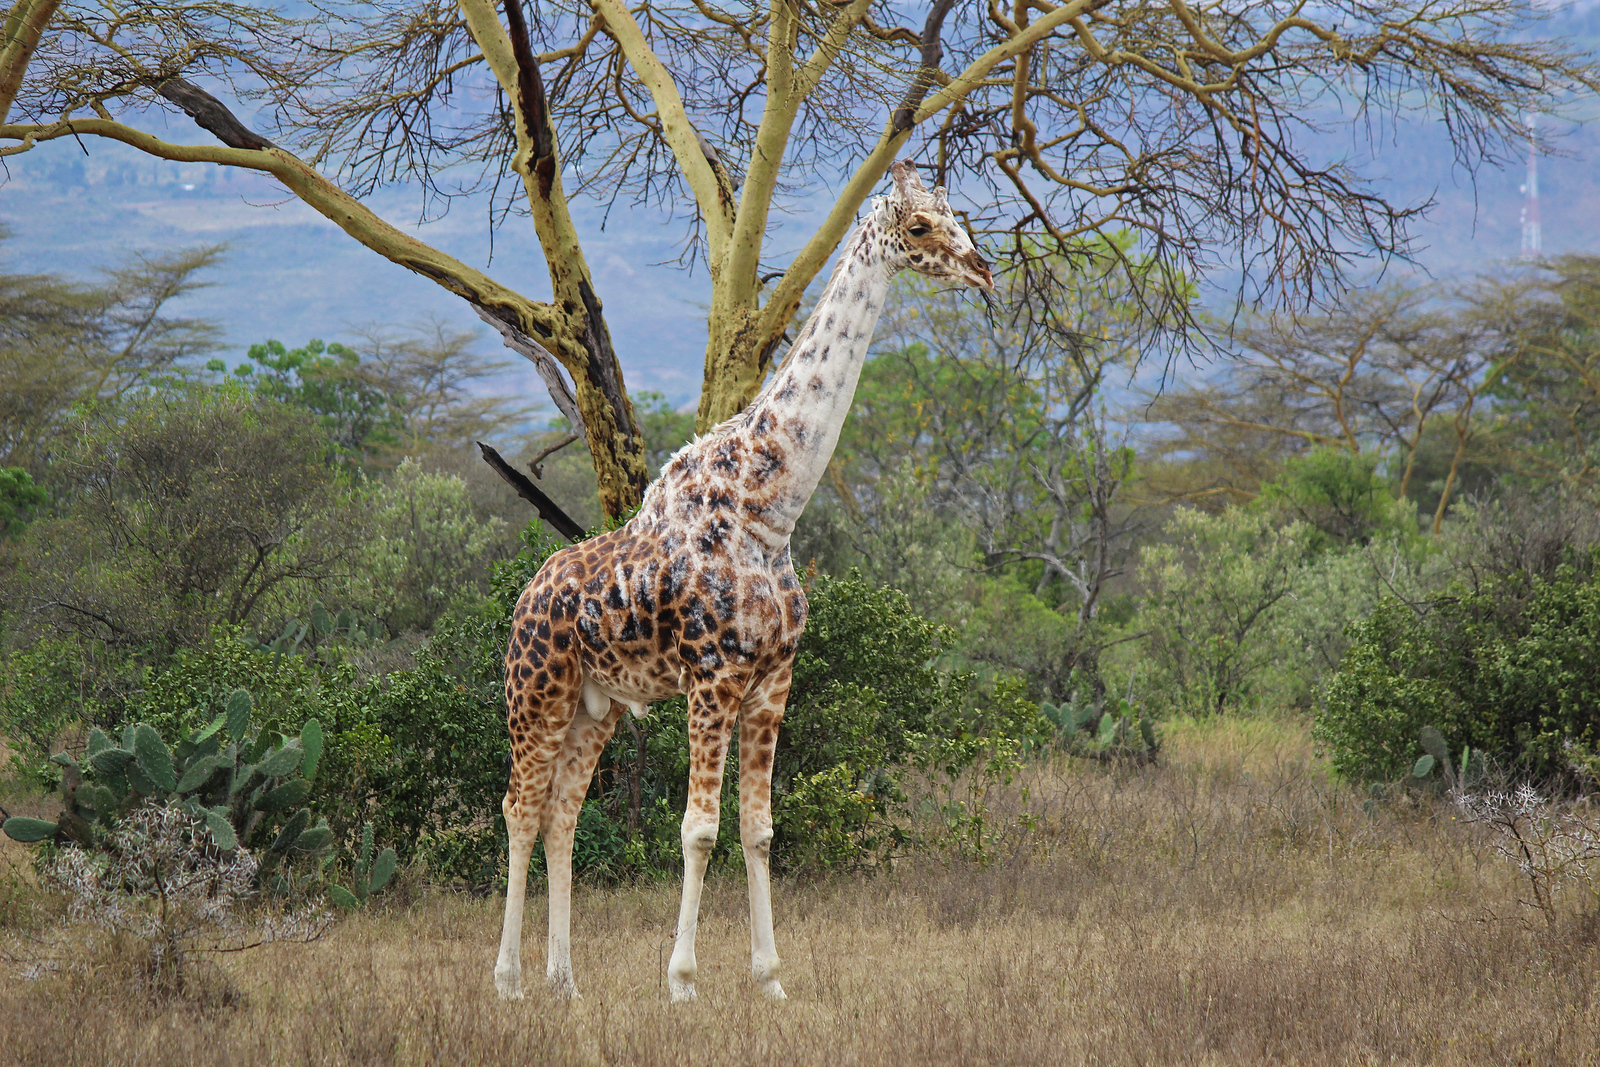 Giraffes, Lions, and Almost Dying: My Adventure in Kenya